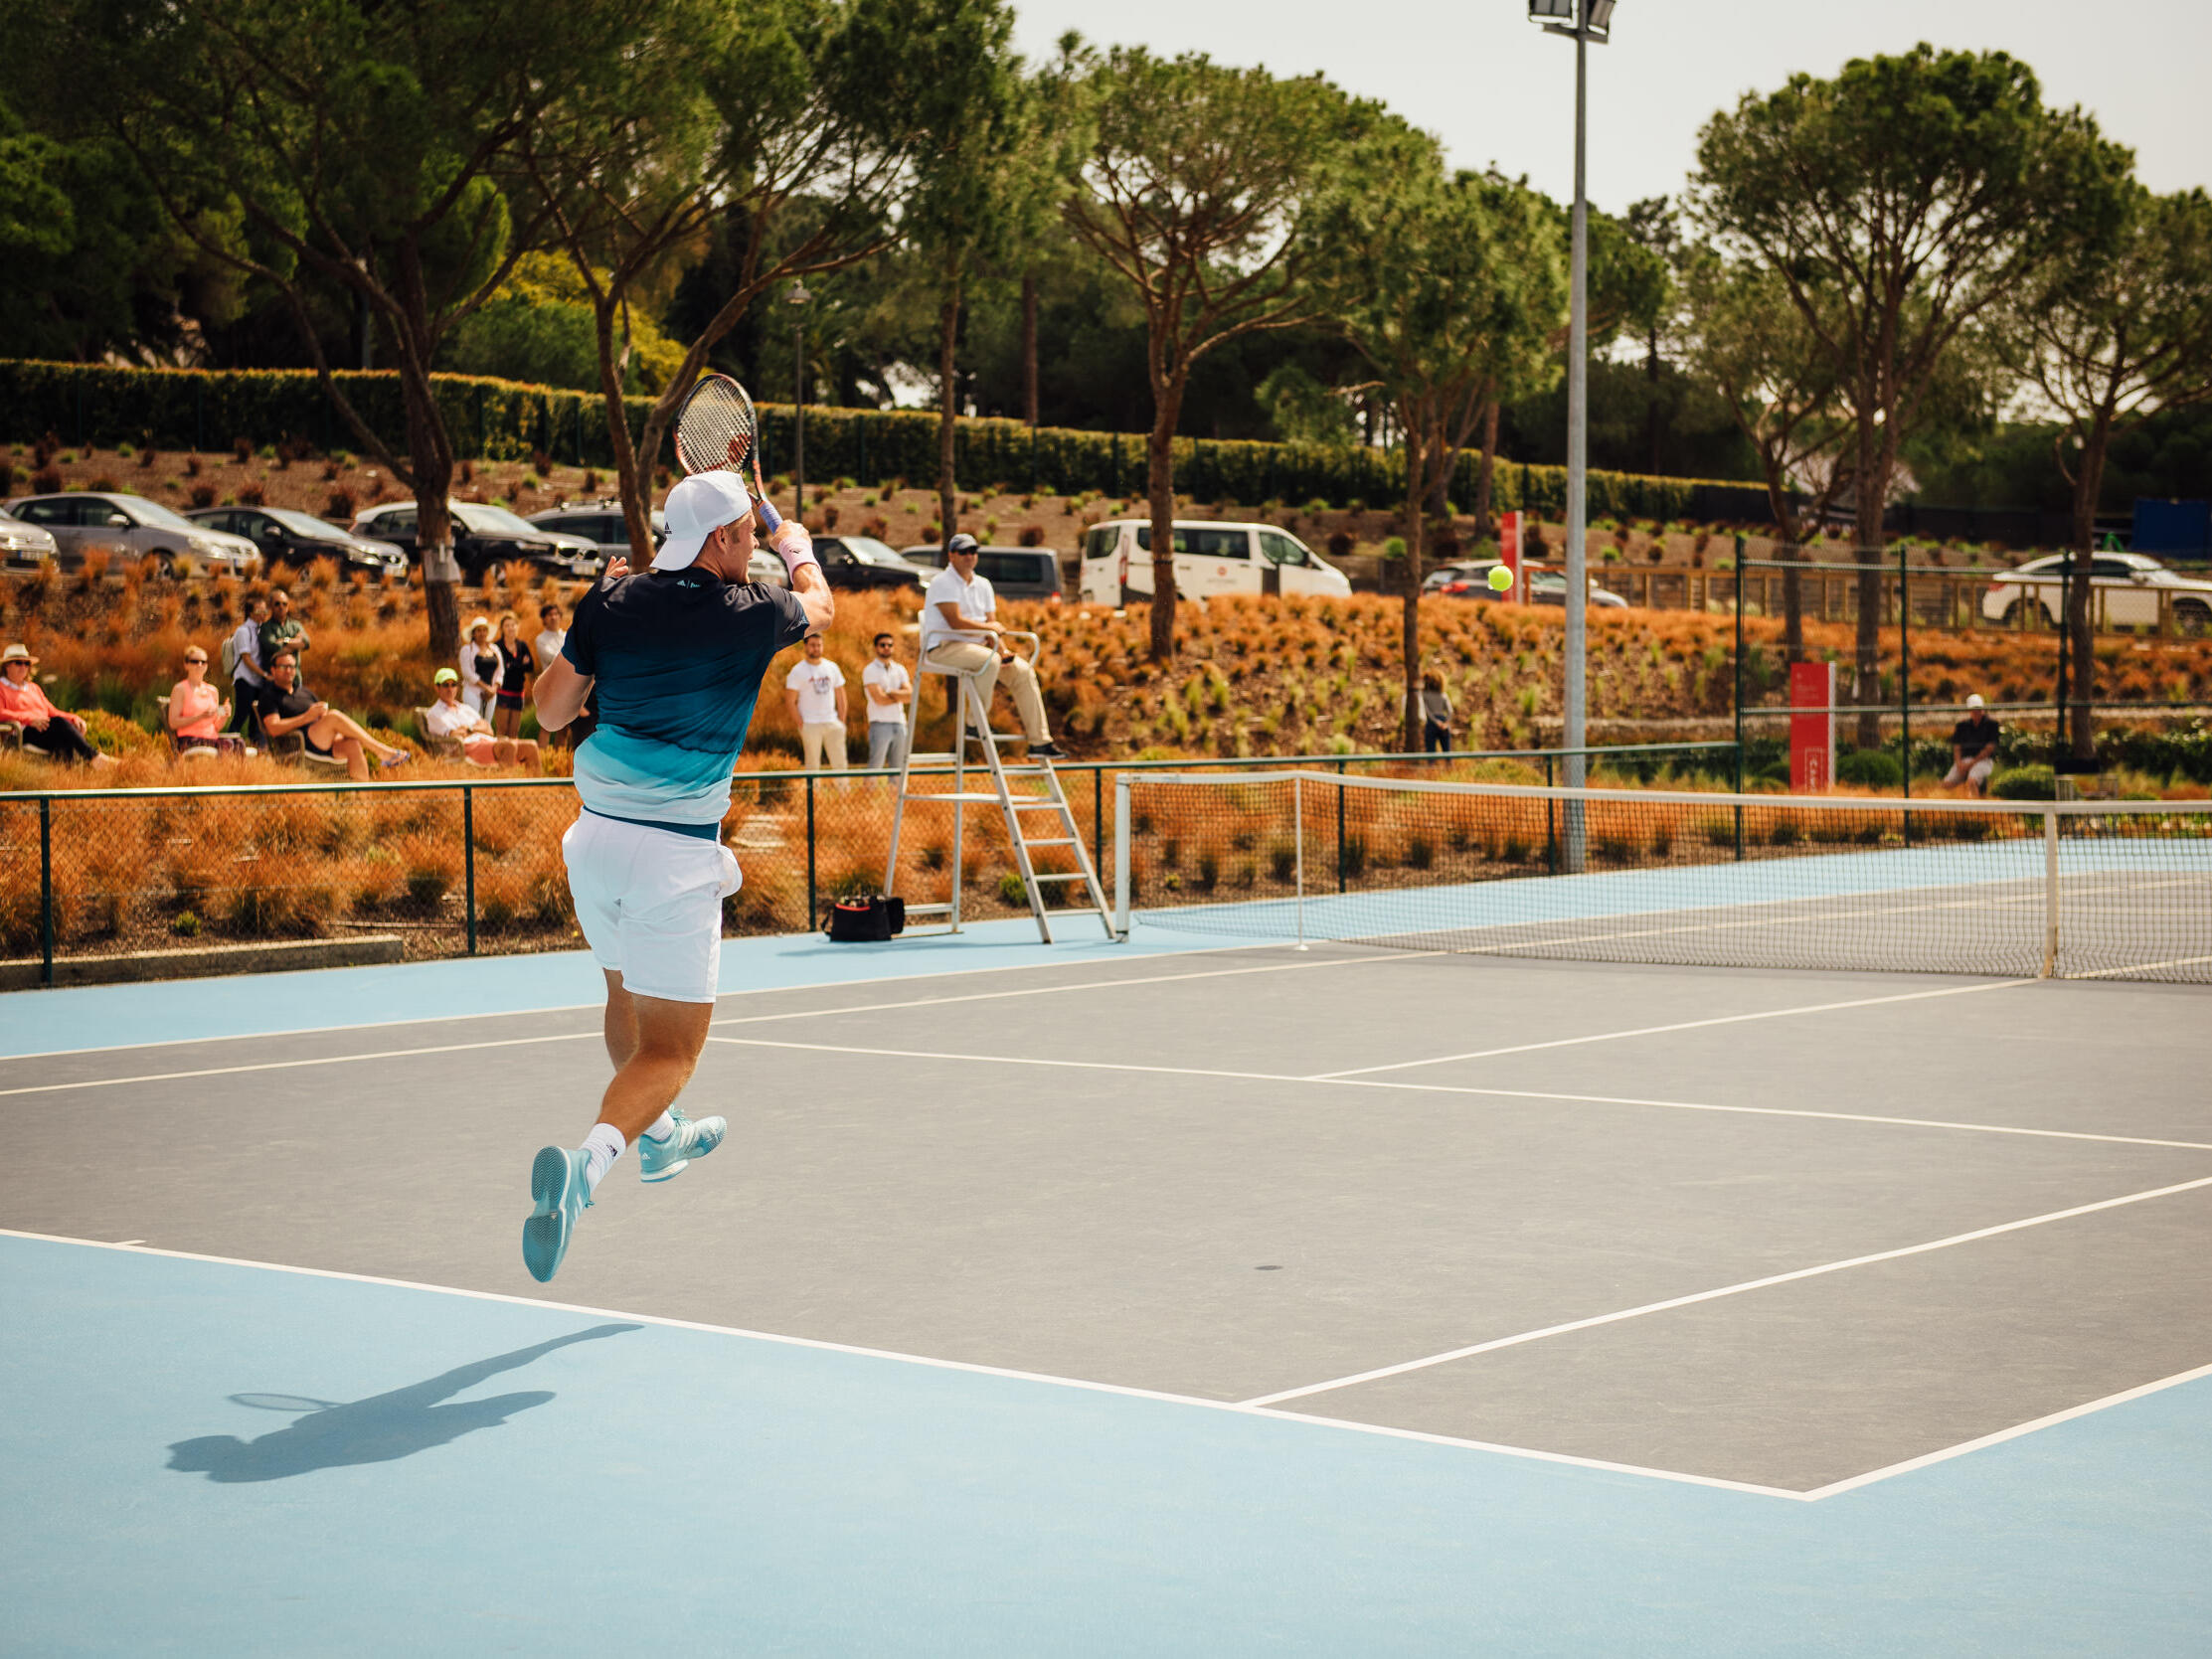 A man playing Tennis-The Magnolia Hotel